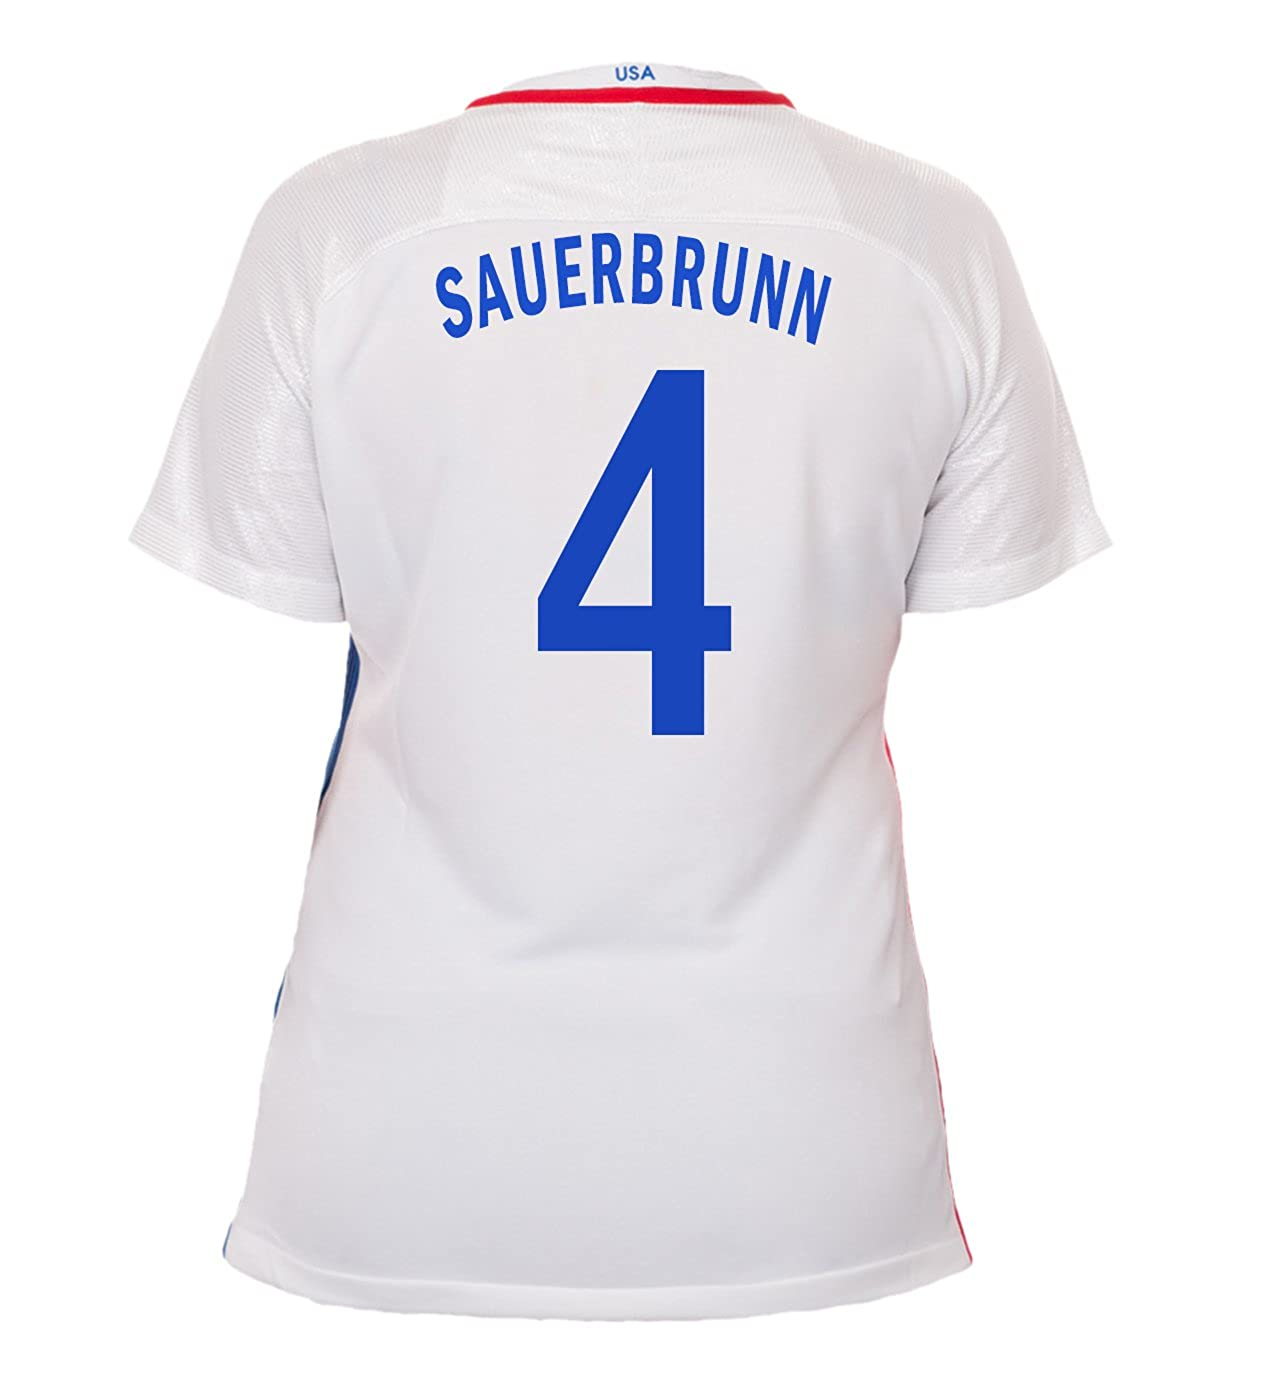 8f56149a3a9 Amazon.com  NIKE Sauerbrunn  4 USA Home Soccer Jersey Rio 2016 Olympics  Women s  Clothing